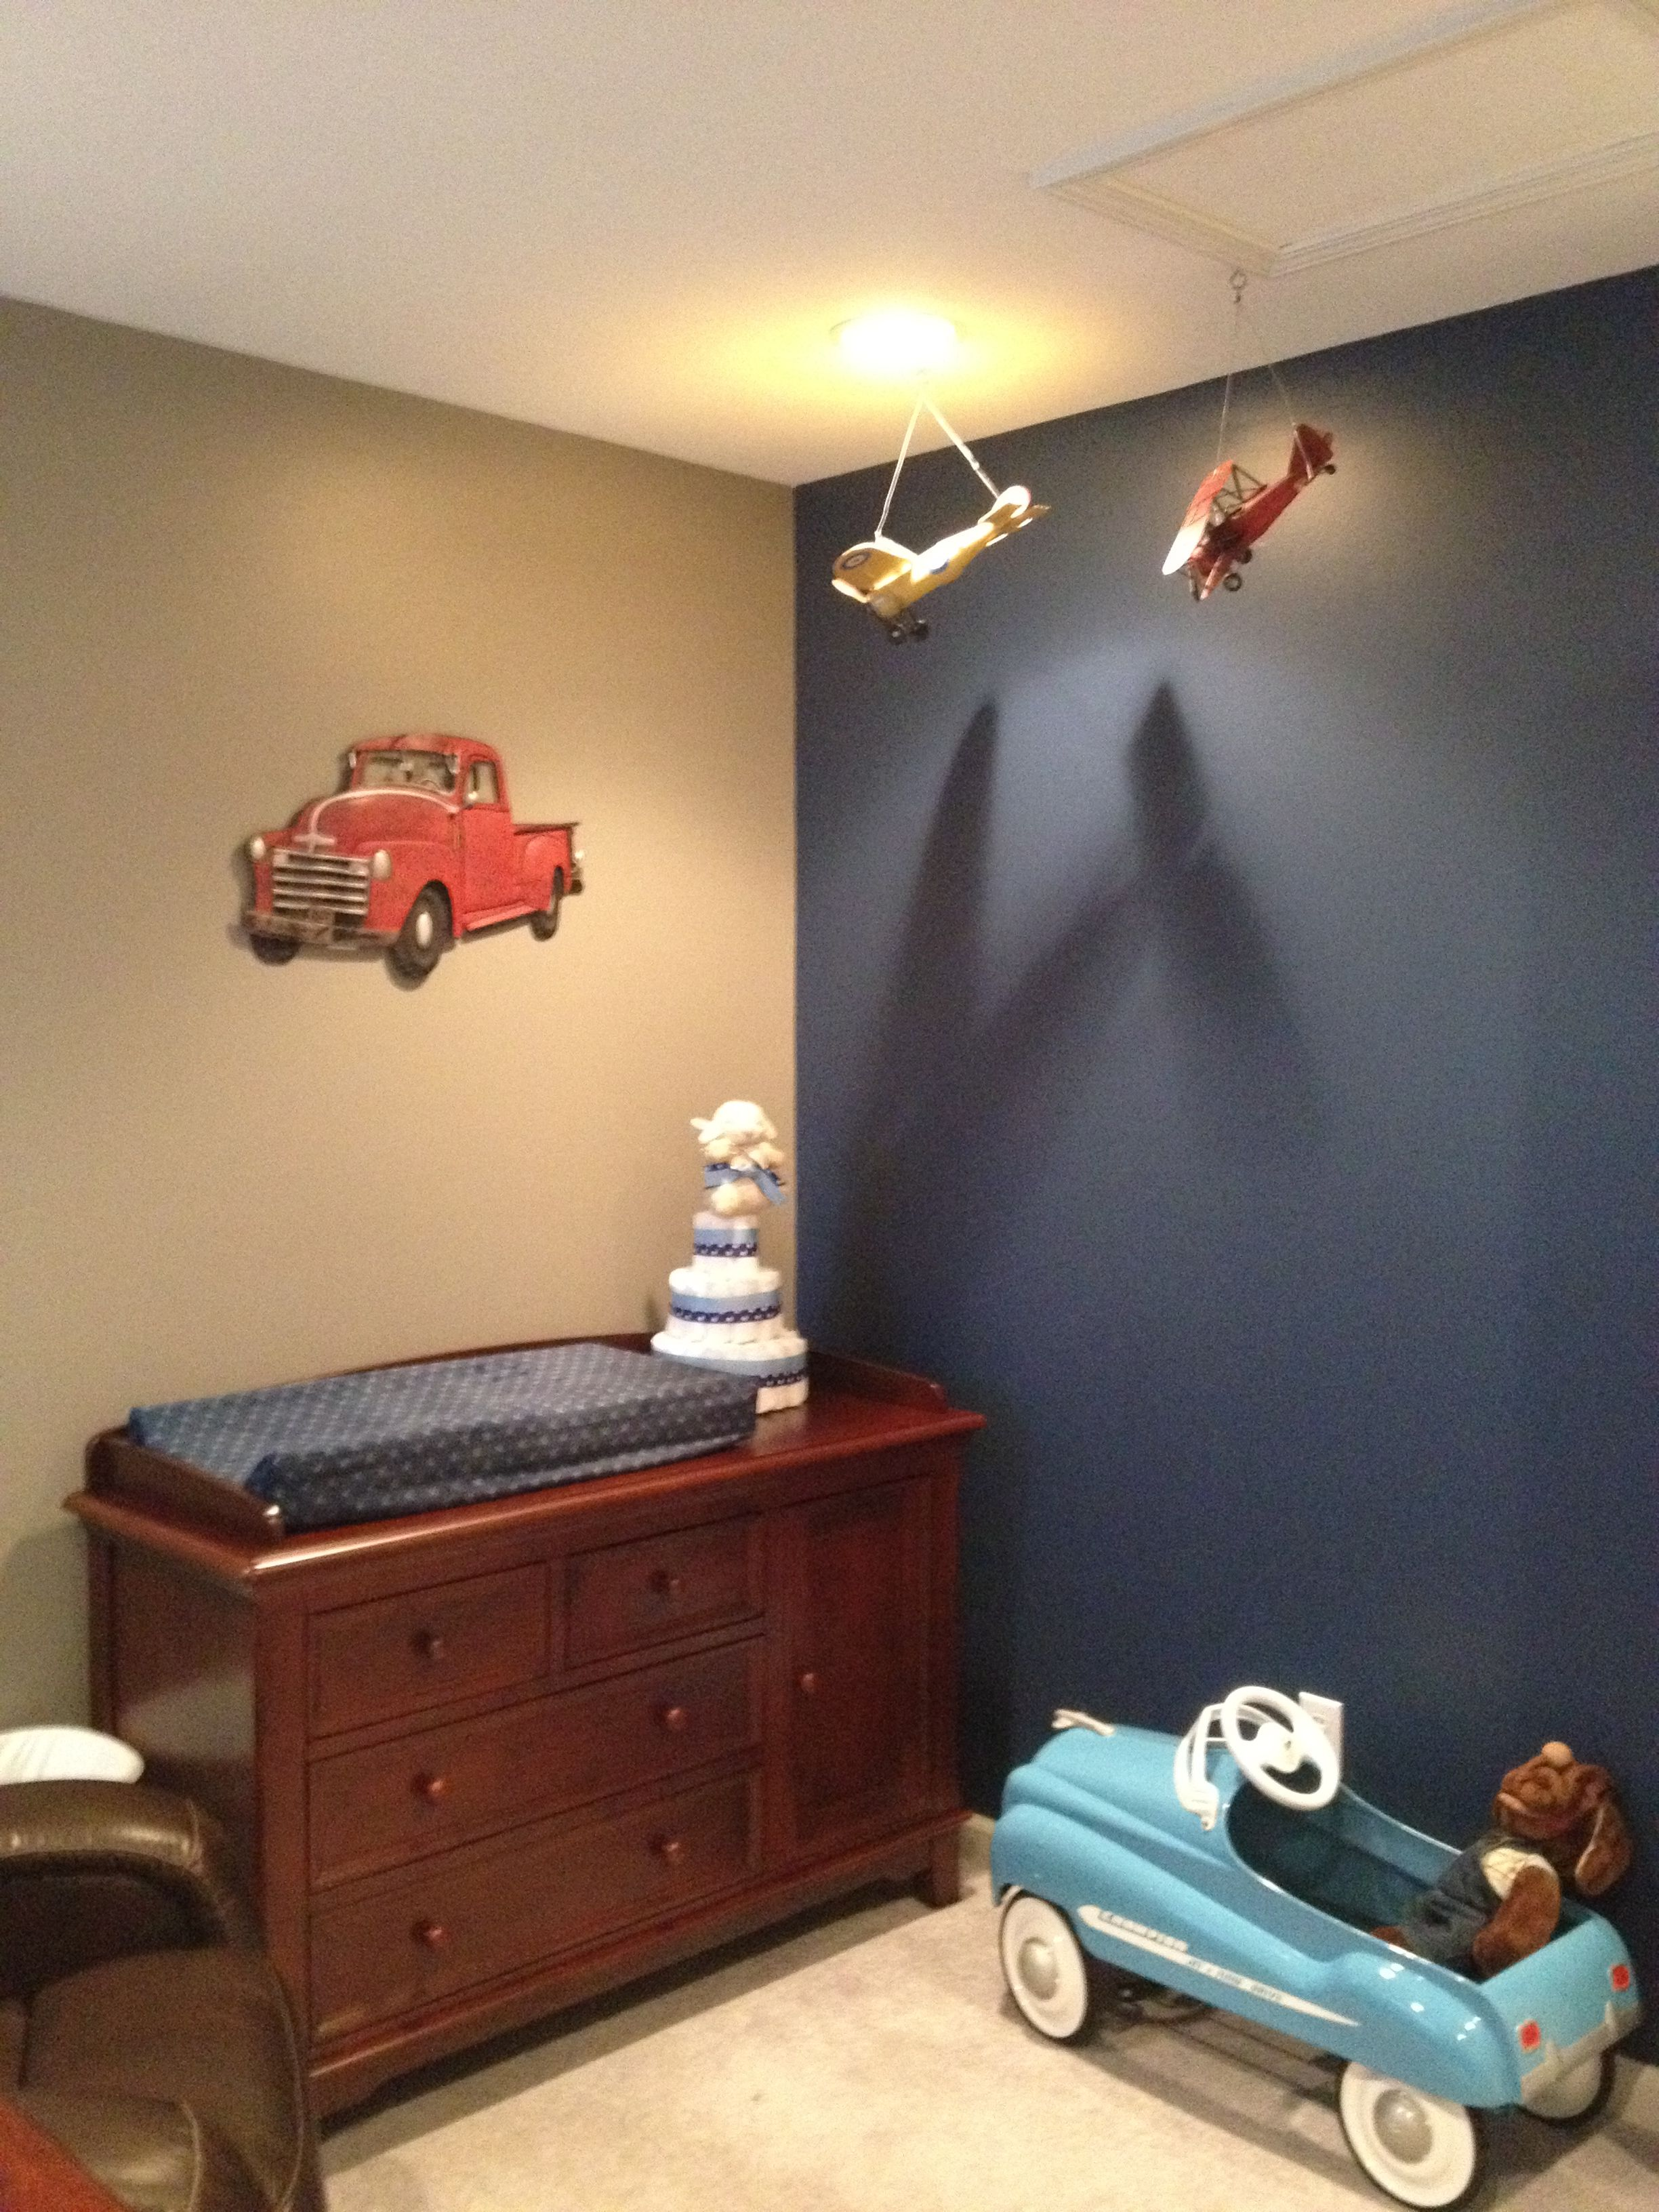 Planes, trucks, and automobiles! Little boy's room finally